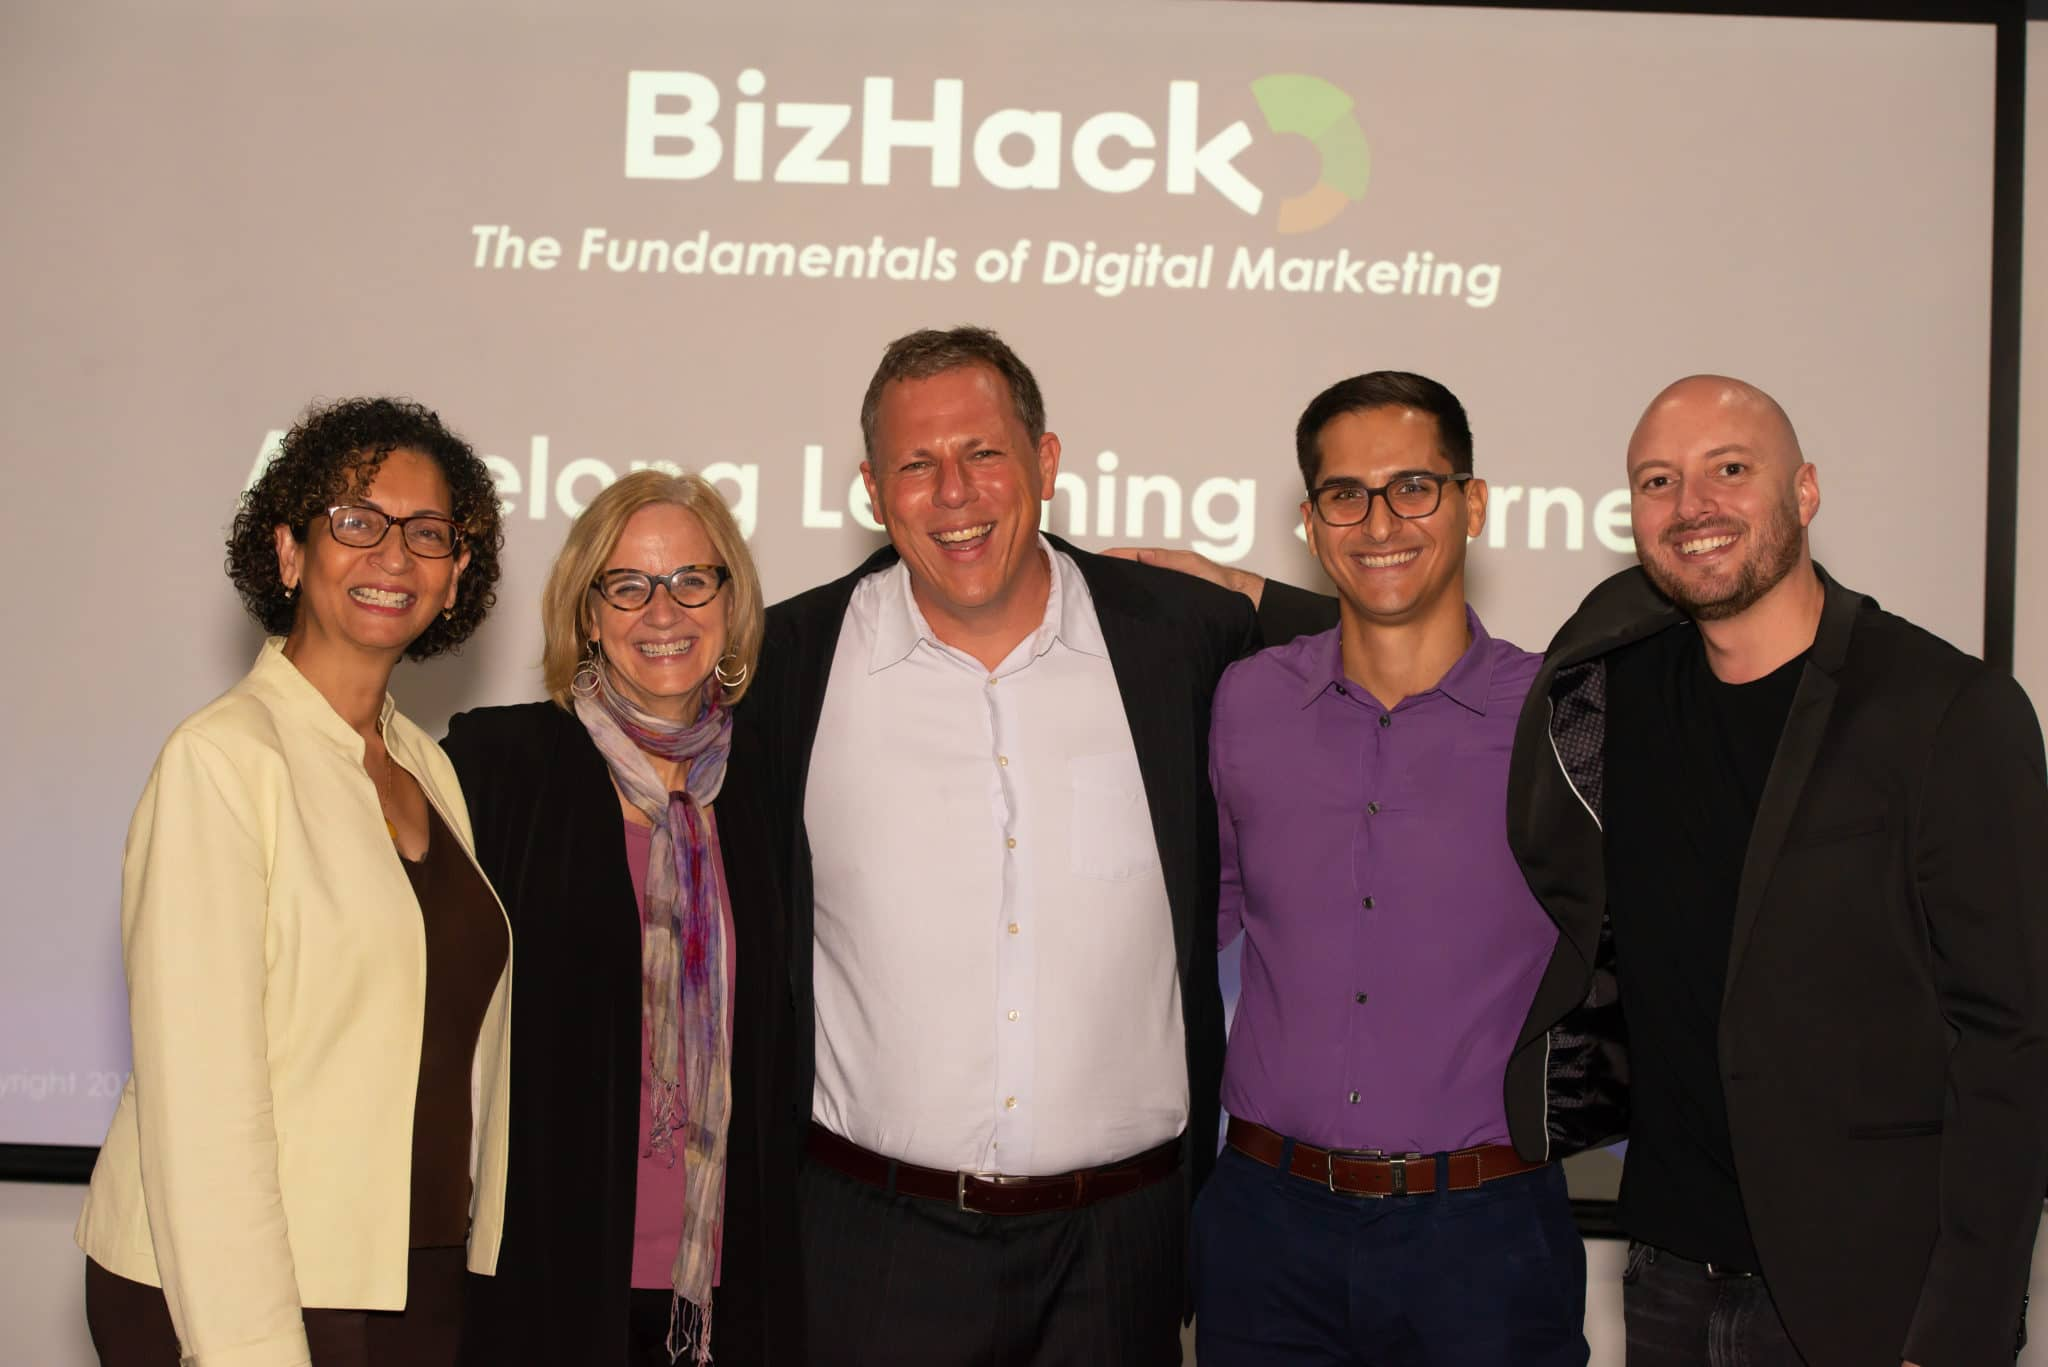 The BizHack Academy Teaching Team of Joy Schaaffe, Eileen Higgins, Dan Grech, Jorge H Gonzalez, and Giovanni Insignares are expert digital marketers who teach businesses how to find new customers using online advertising and social media marketing